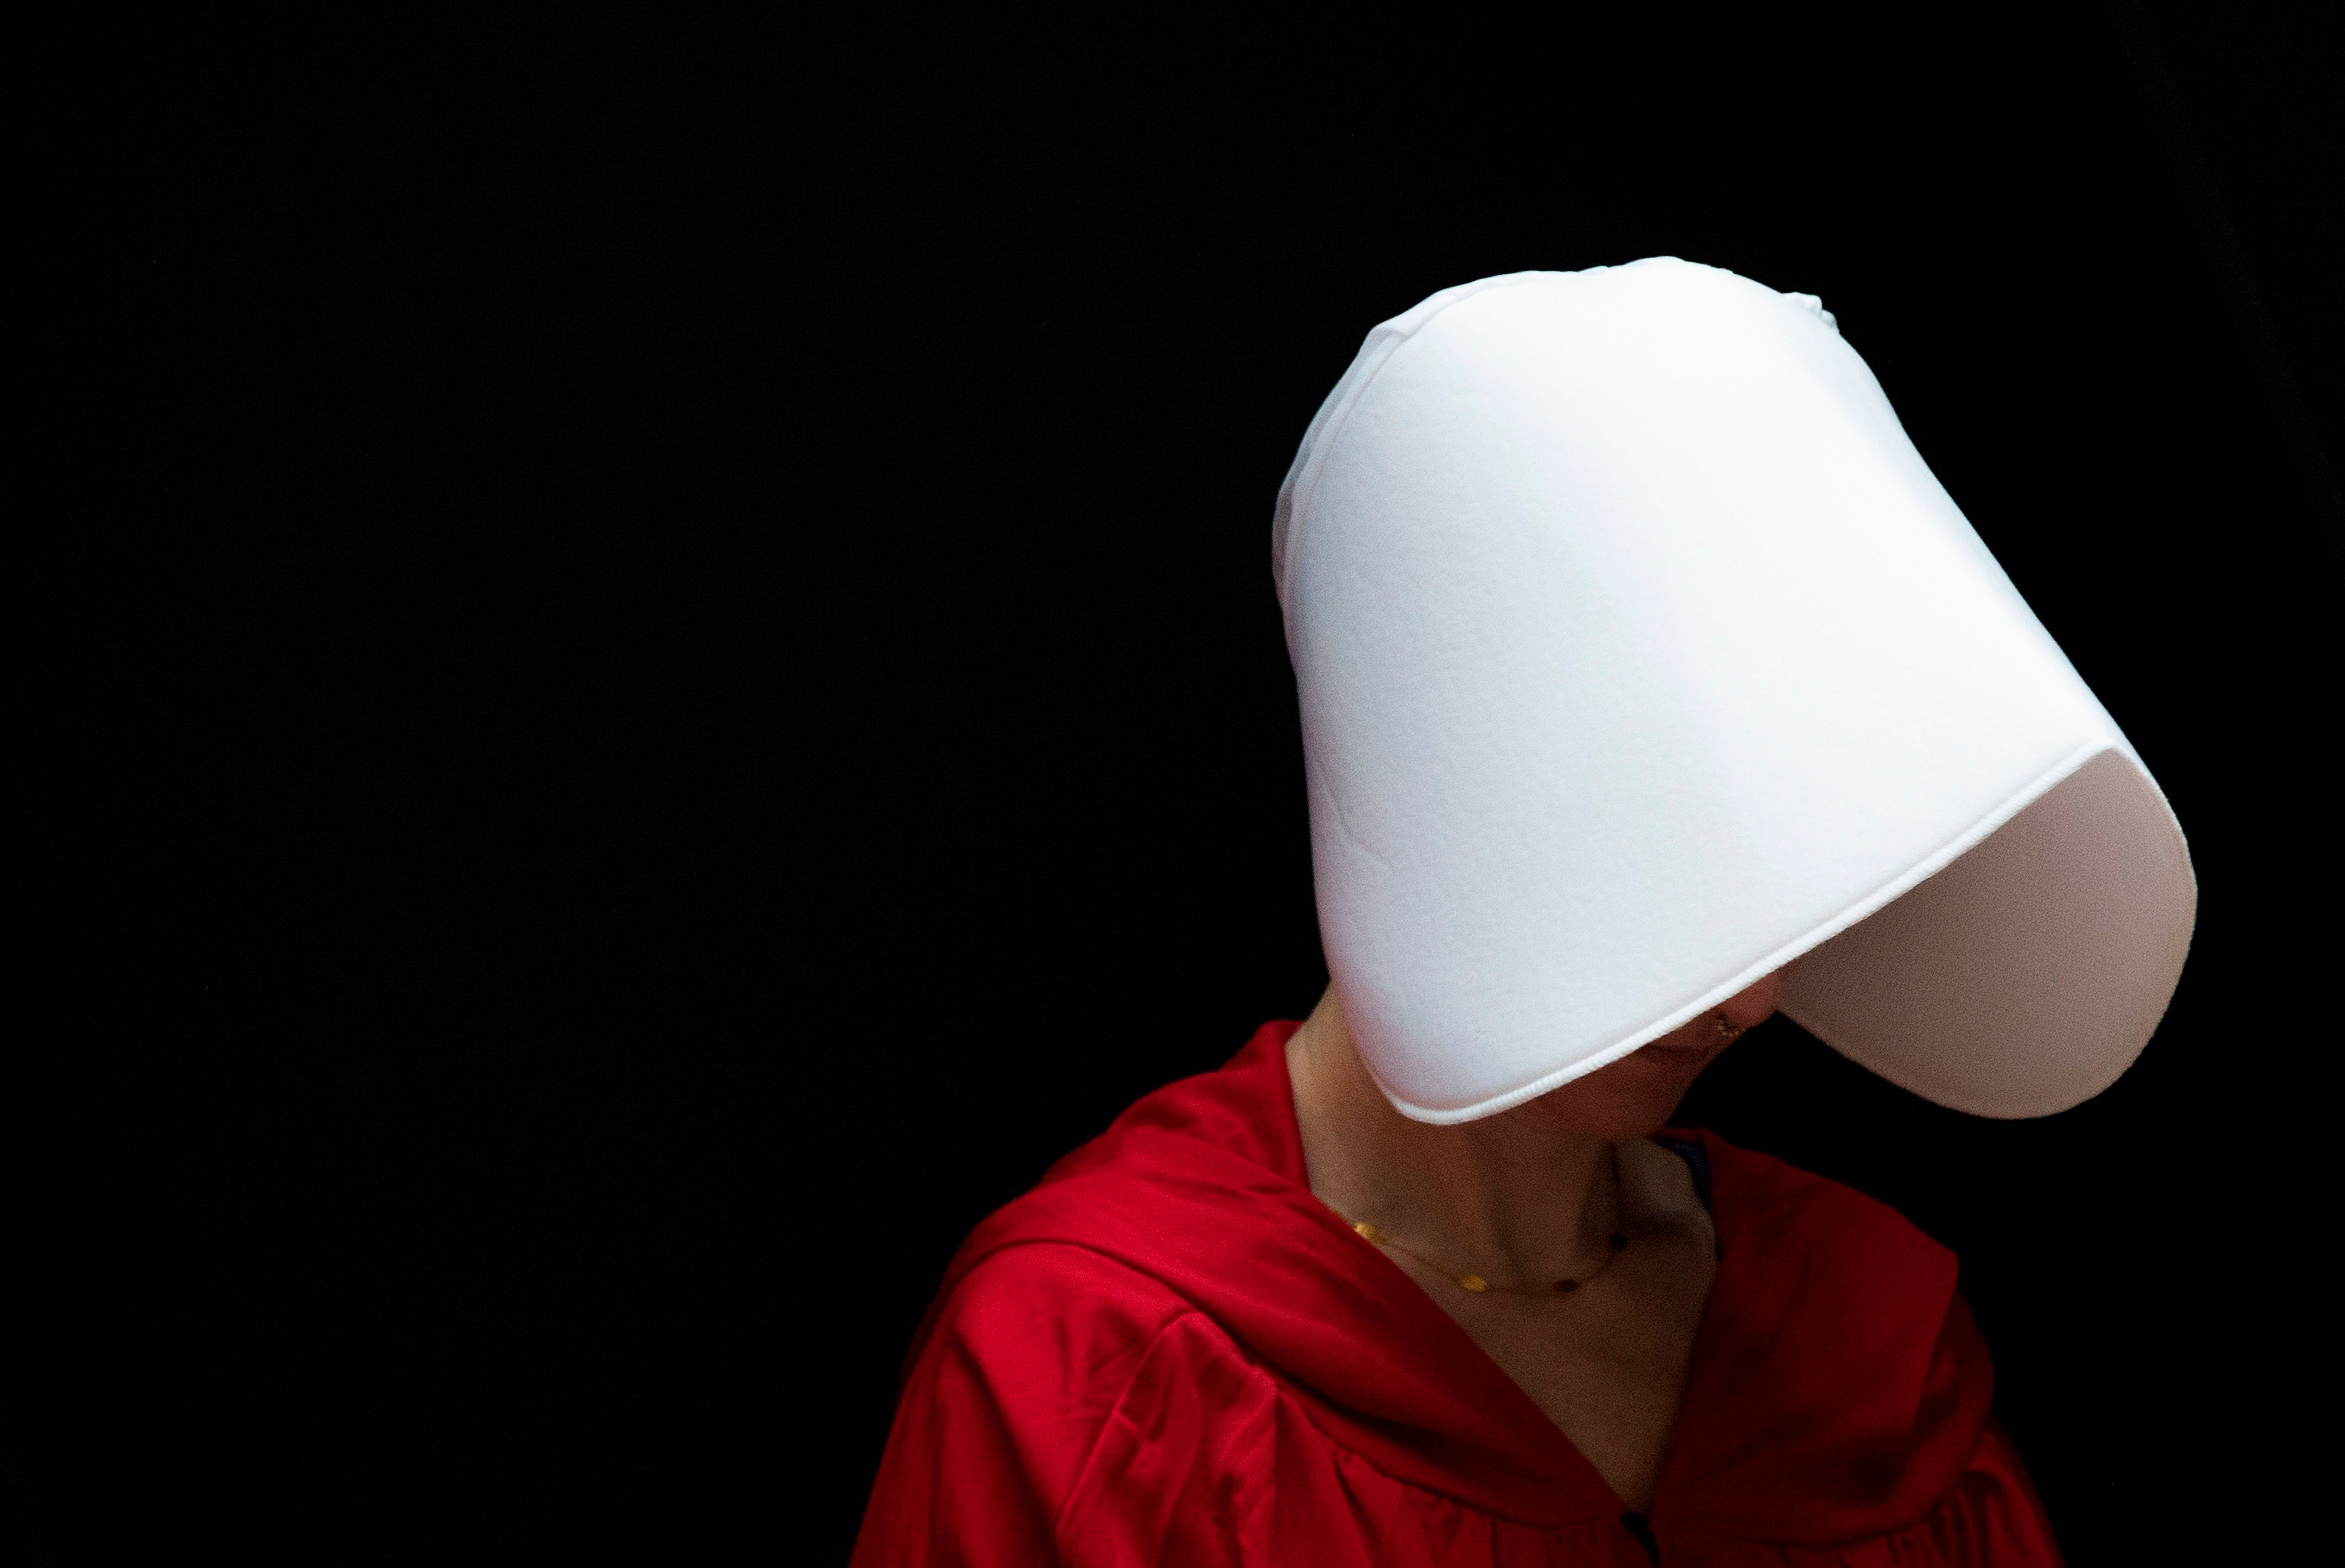 TOPSHOT - A woman dressed as a character from the novel-turned-TV series 'The Handmaid's Tale' walks through the Hart Senate Office Building as Supreme Court nominee Brett Kavanaugh starts the first day of his confirmation hearing in front of the US Senate on Capitol Hill in Washington DC, on September 4, 2018. - President Donald Trump's newest Supreme Court nominee Brett Kavanaugh is expected to face punishing questioning from Democrats this week over his endorsement of presidential immunity and his opposition to abortion. Some two dozen witnesses are lined up to argue for and against confirming Kavanaugh, who could swing the nine-member high court decidedly in conservatives' favor for years to come. Democrats have mobilized heavily to prevent his approval. (Photo by Jim WATSON / AFP)        (Photo credit should read JIM WATSON/AFP/Getty Images)